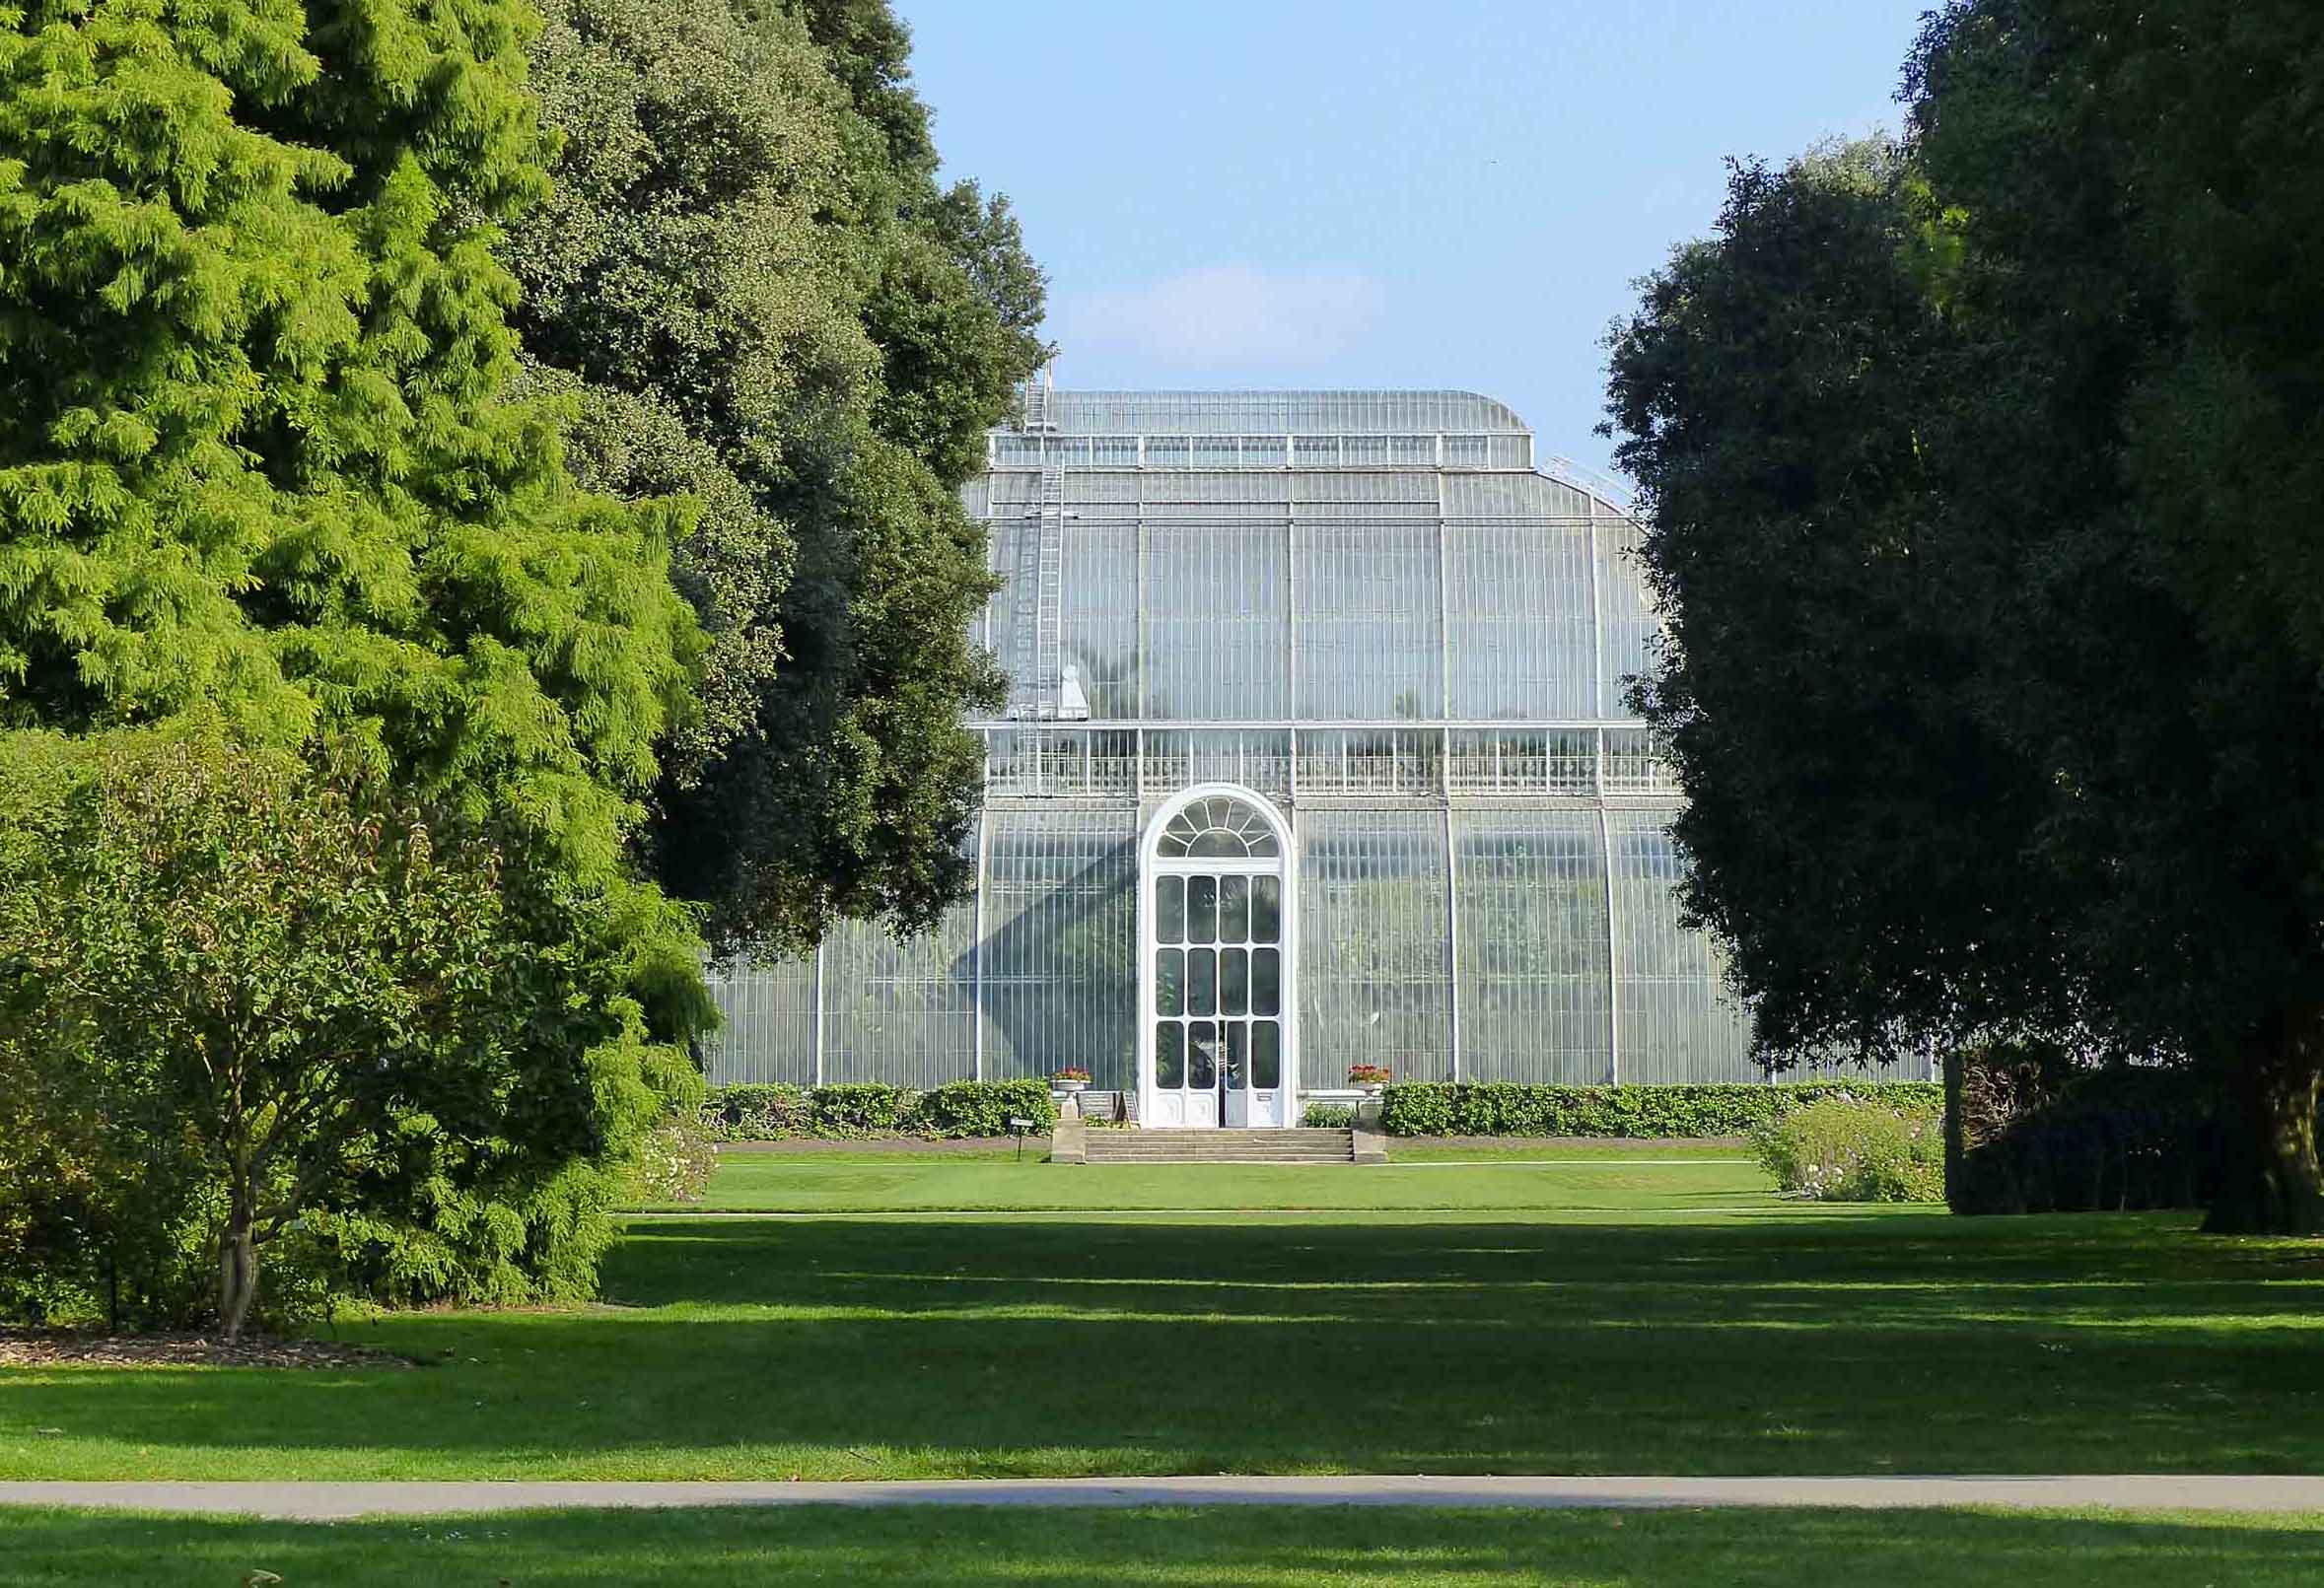 Large conservatory among trees